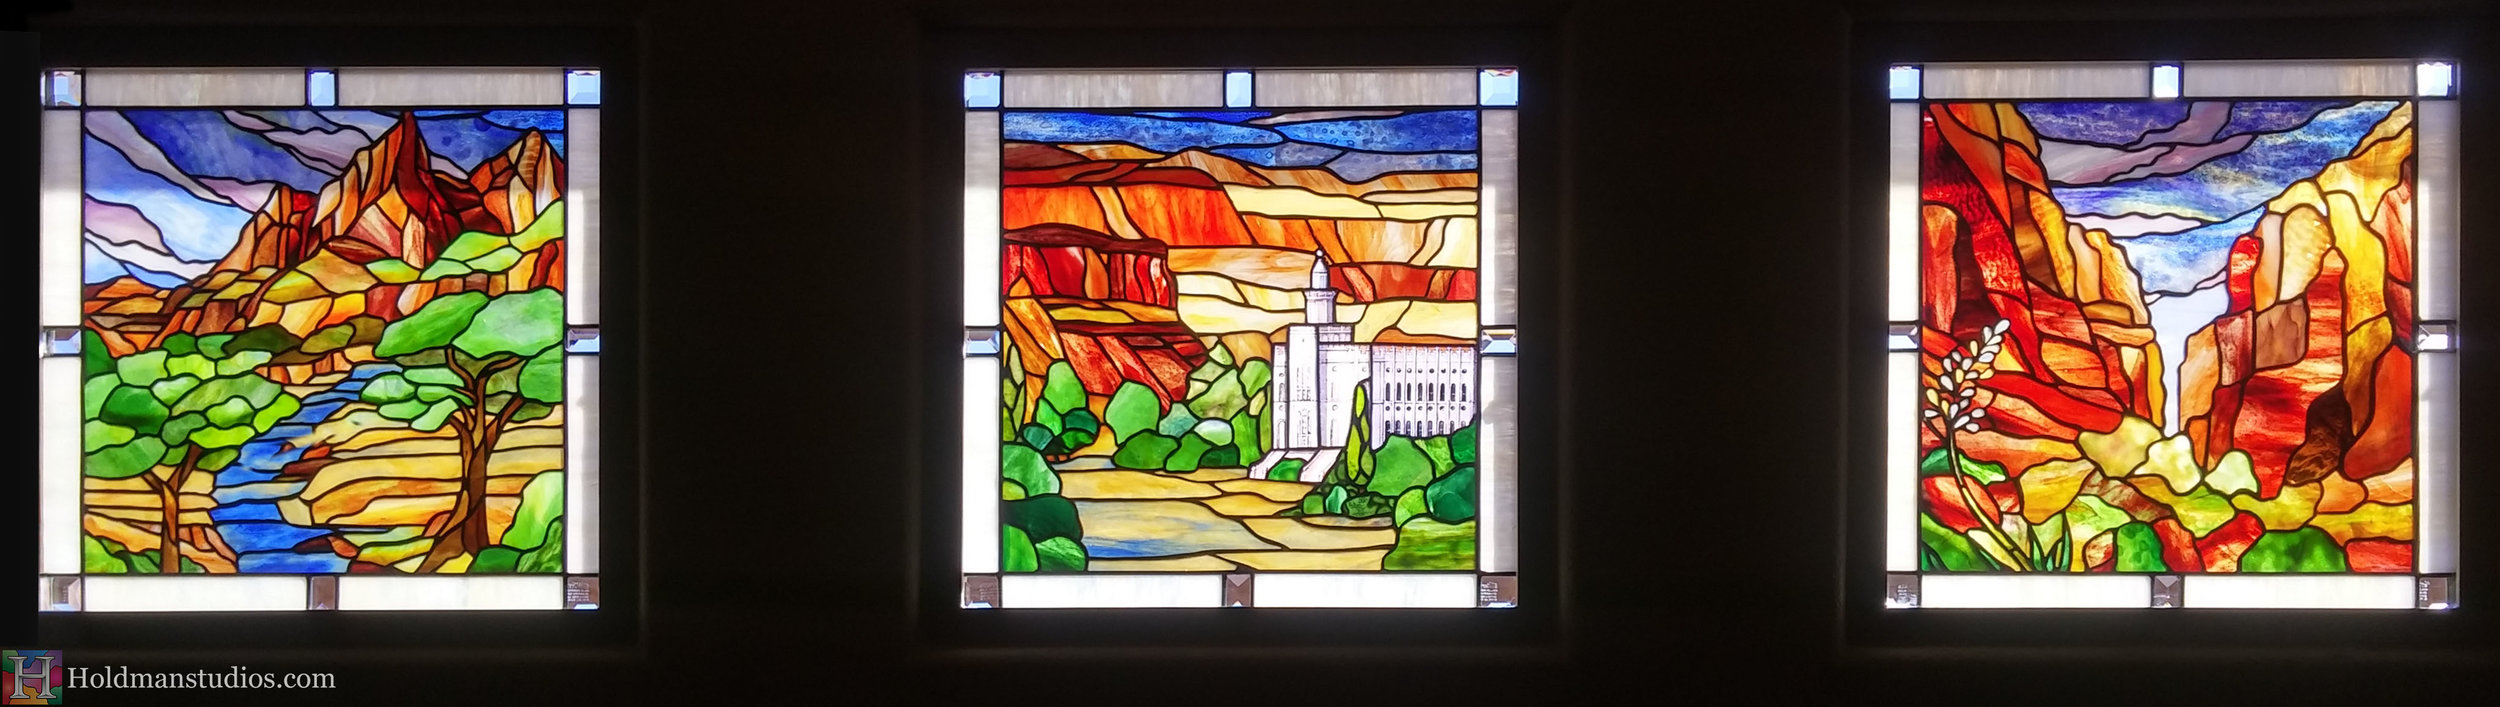 Holdman-Studios-Stained-Glass-Window-LDS-Manti-Temple-Southern-Utah-Mountians-Trees-Sky-Clounds-River-Agave-Plant-Flowers.jpg